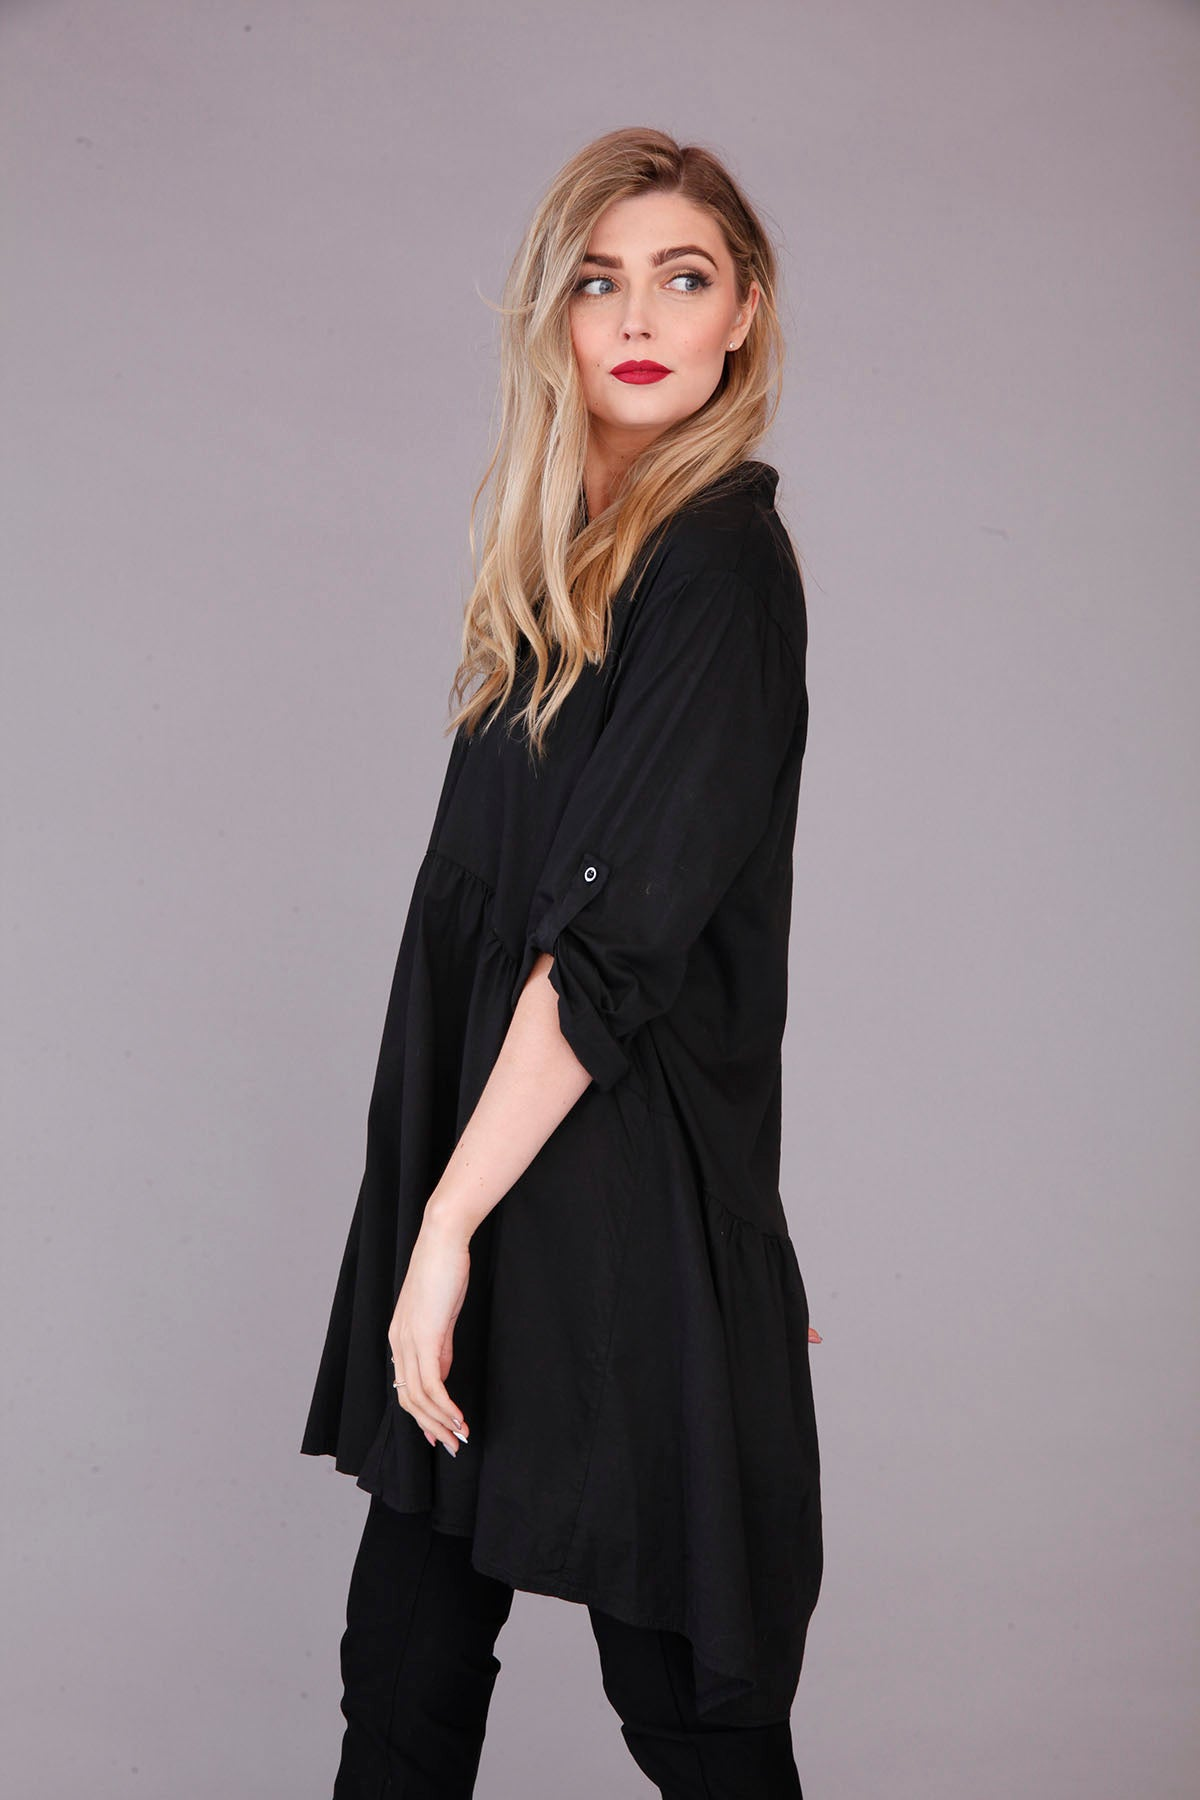 goose island black smock top